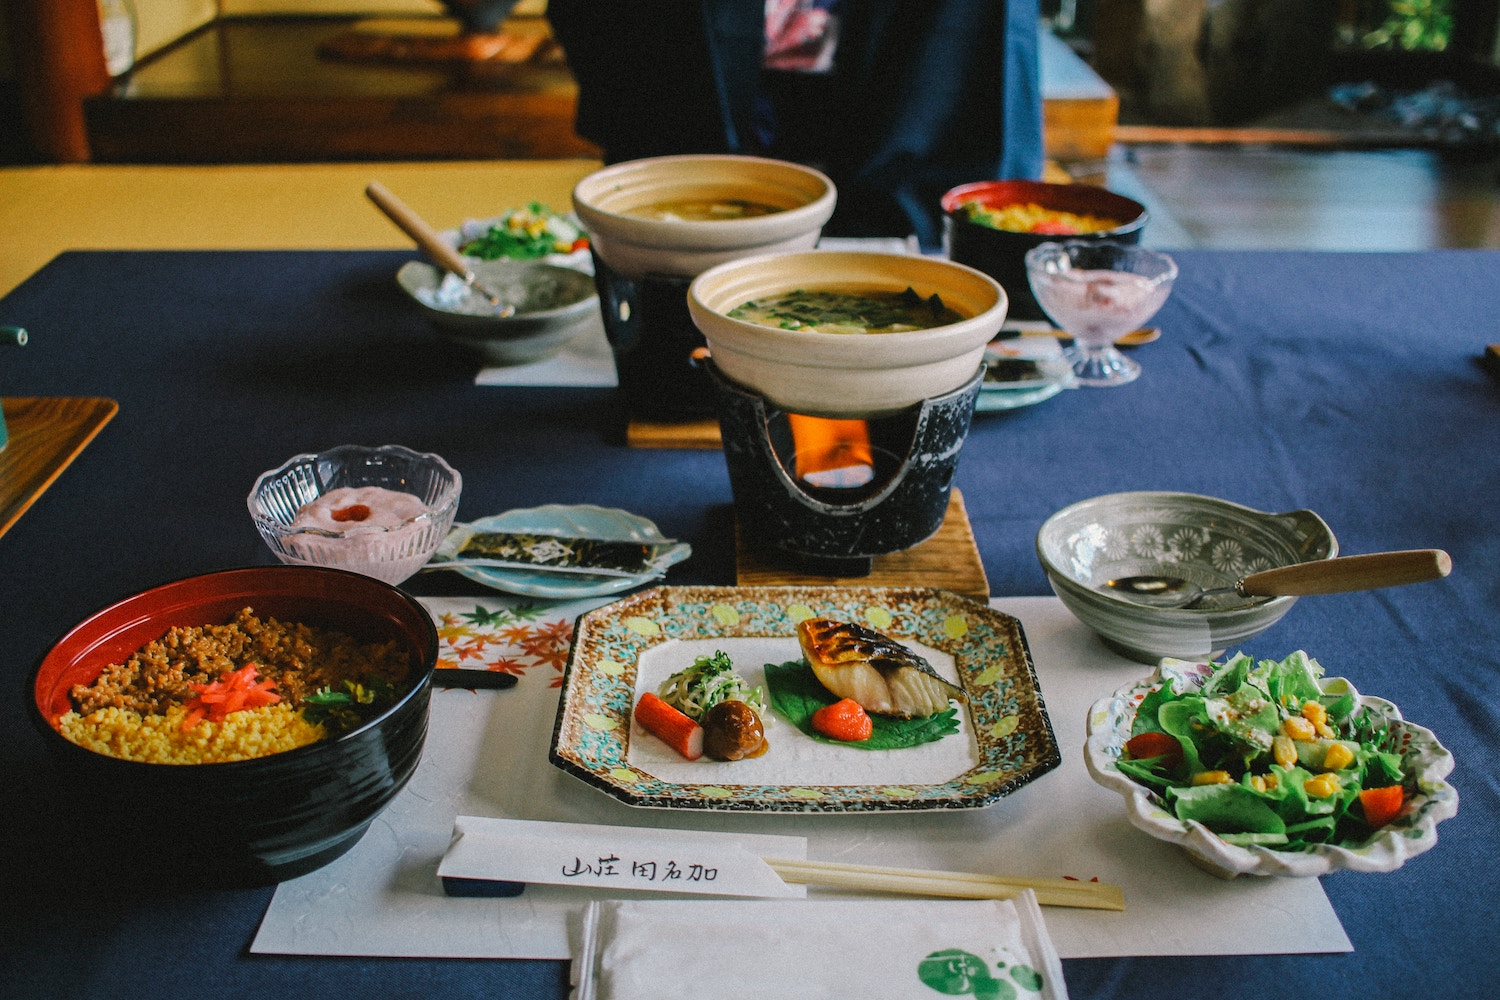 traditional Japanese meal at low table